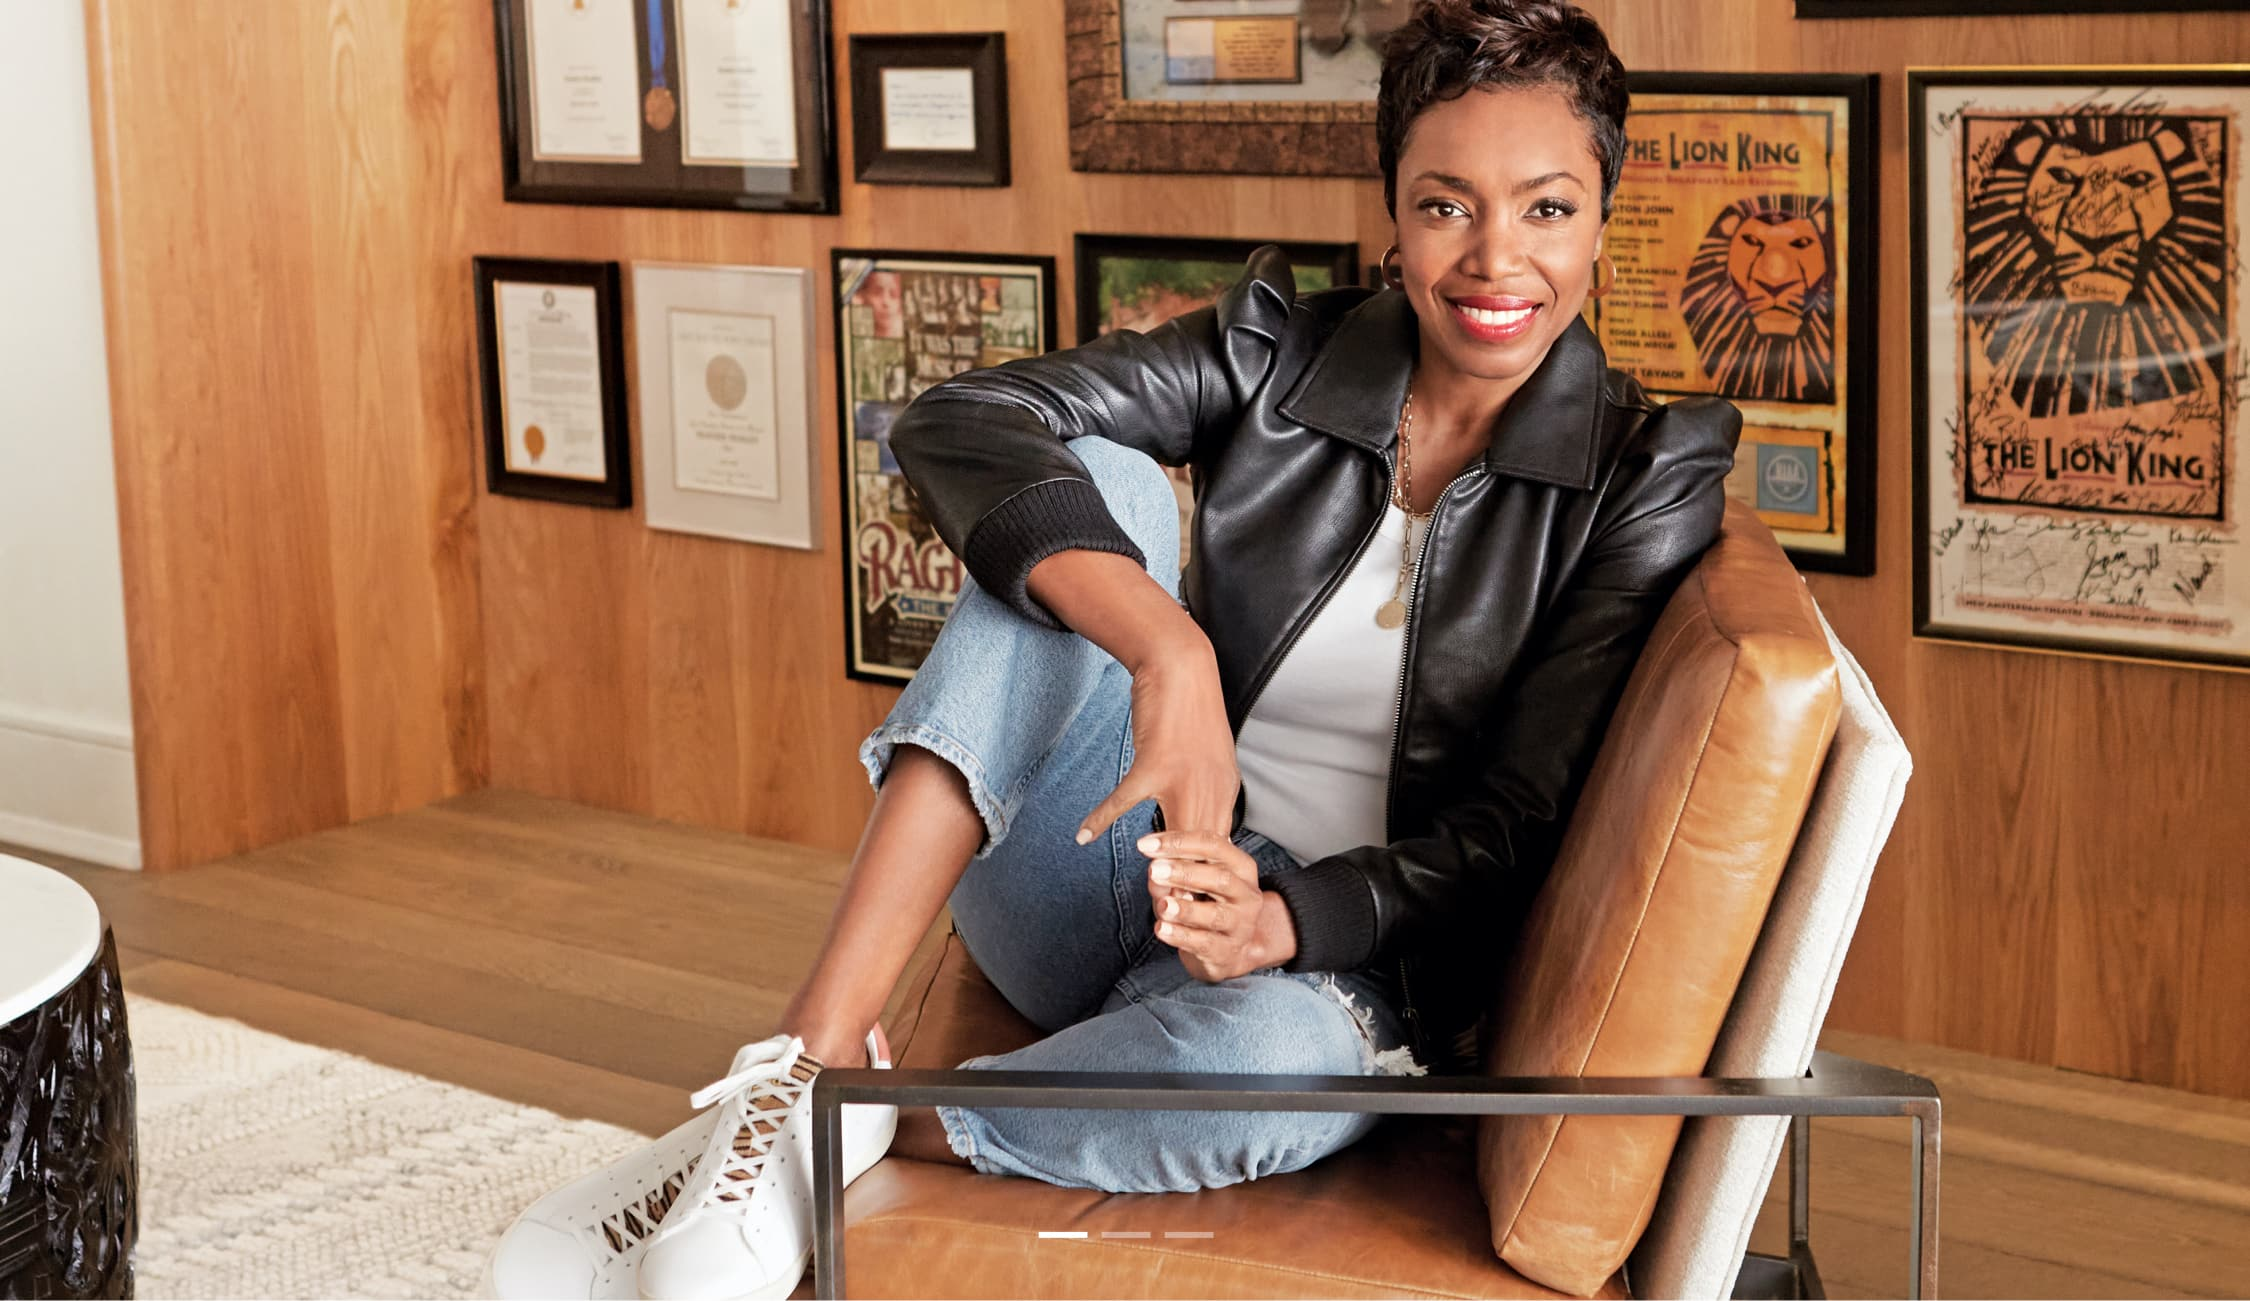 Heather Headley sitting in an armchair and smiling.